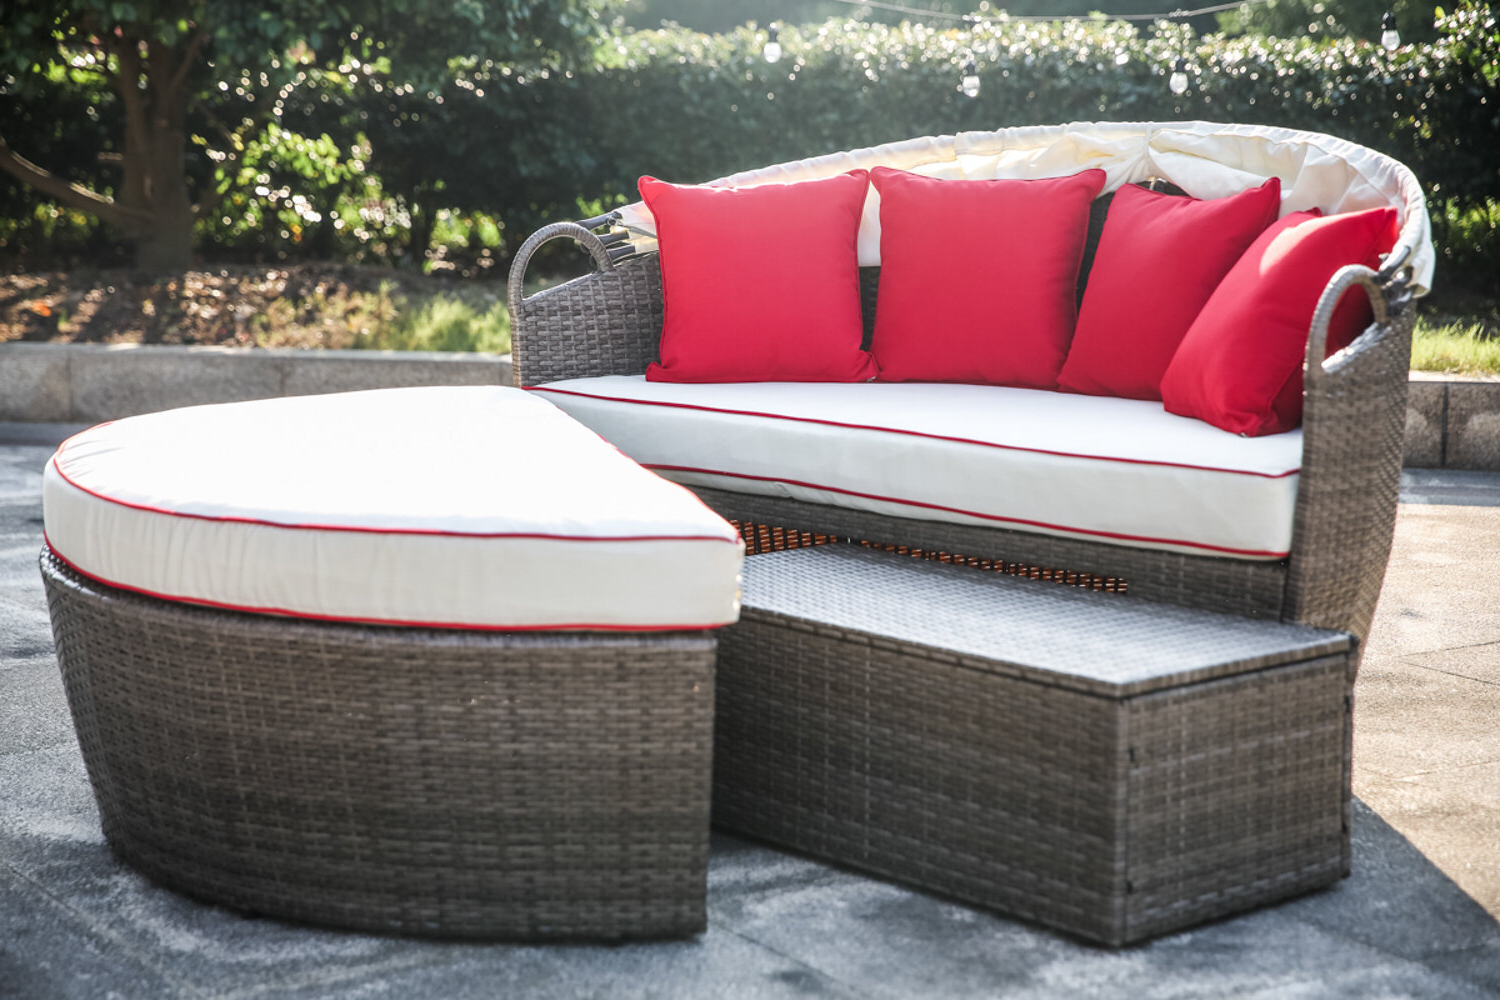 Tiana Patio Daybeds With Cushions Intended For 2020 Fansler Patio Daybed With Cushions (View 2 of 20)